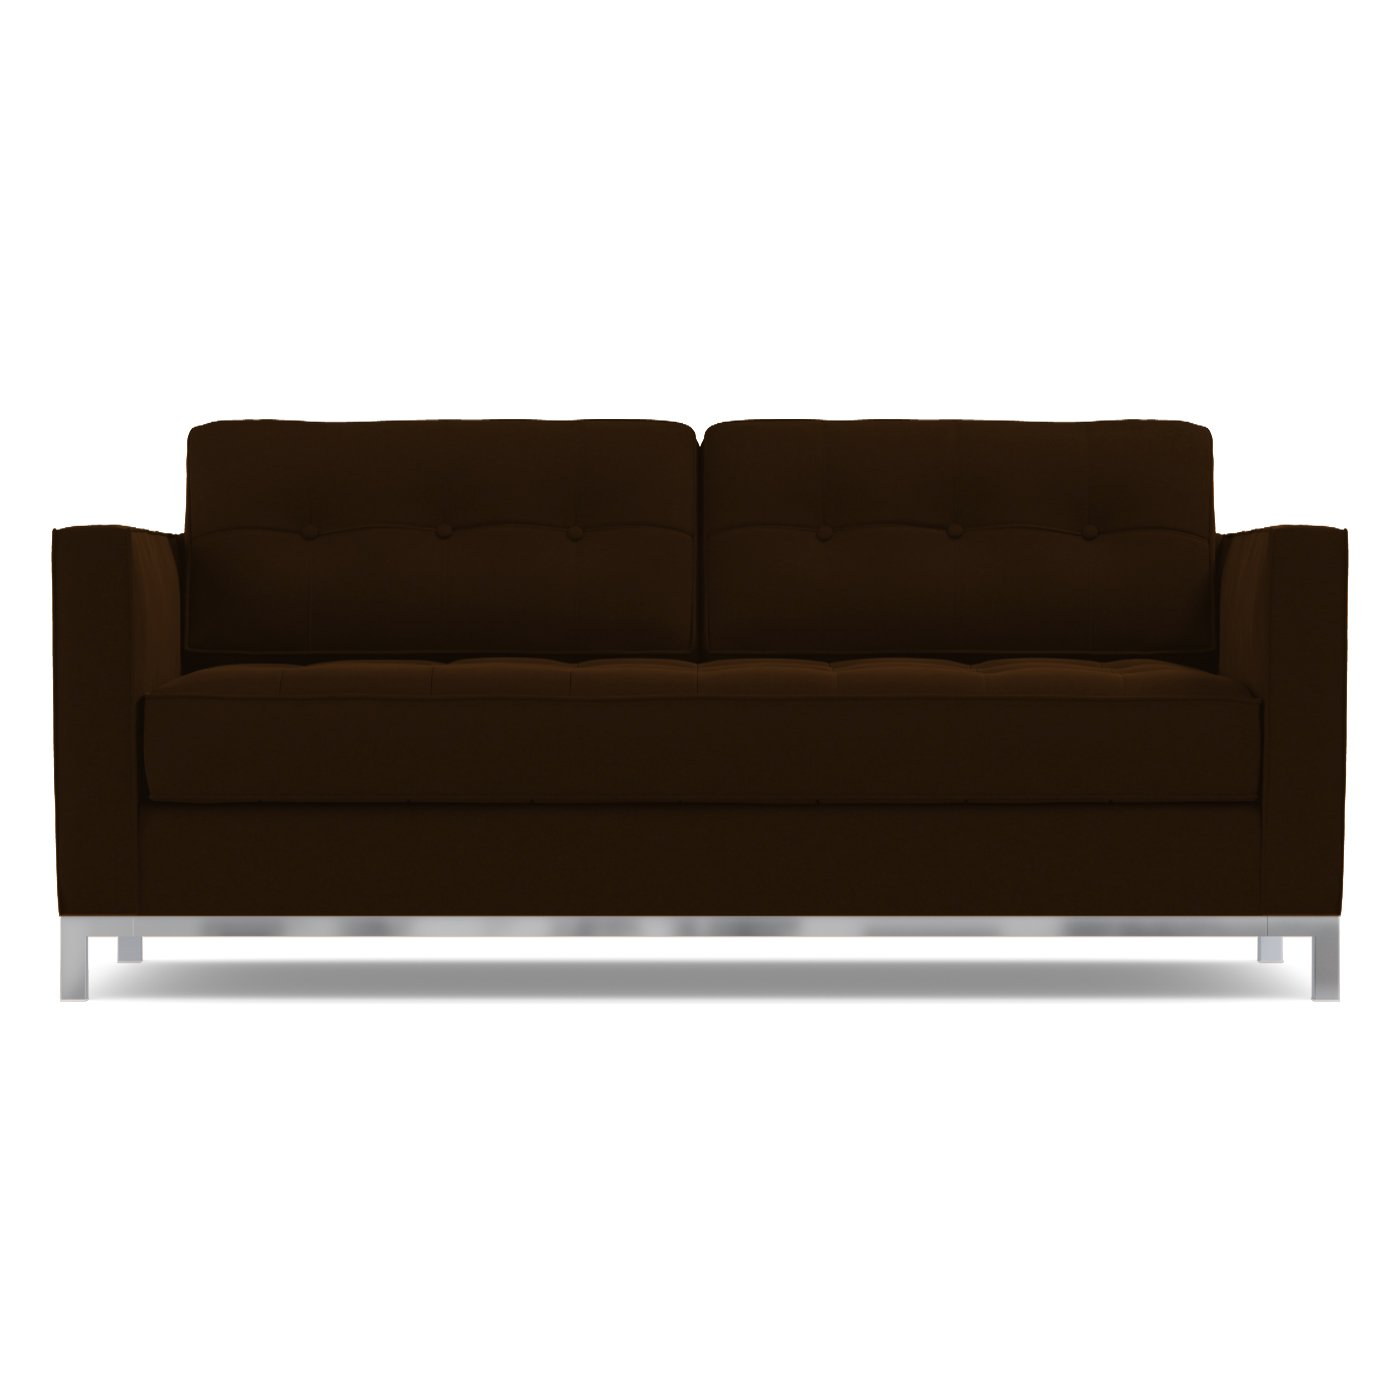 Awesome apartment size sectional sofa leather sectional sofas - Apartment size sectional sofas ...